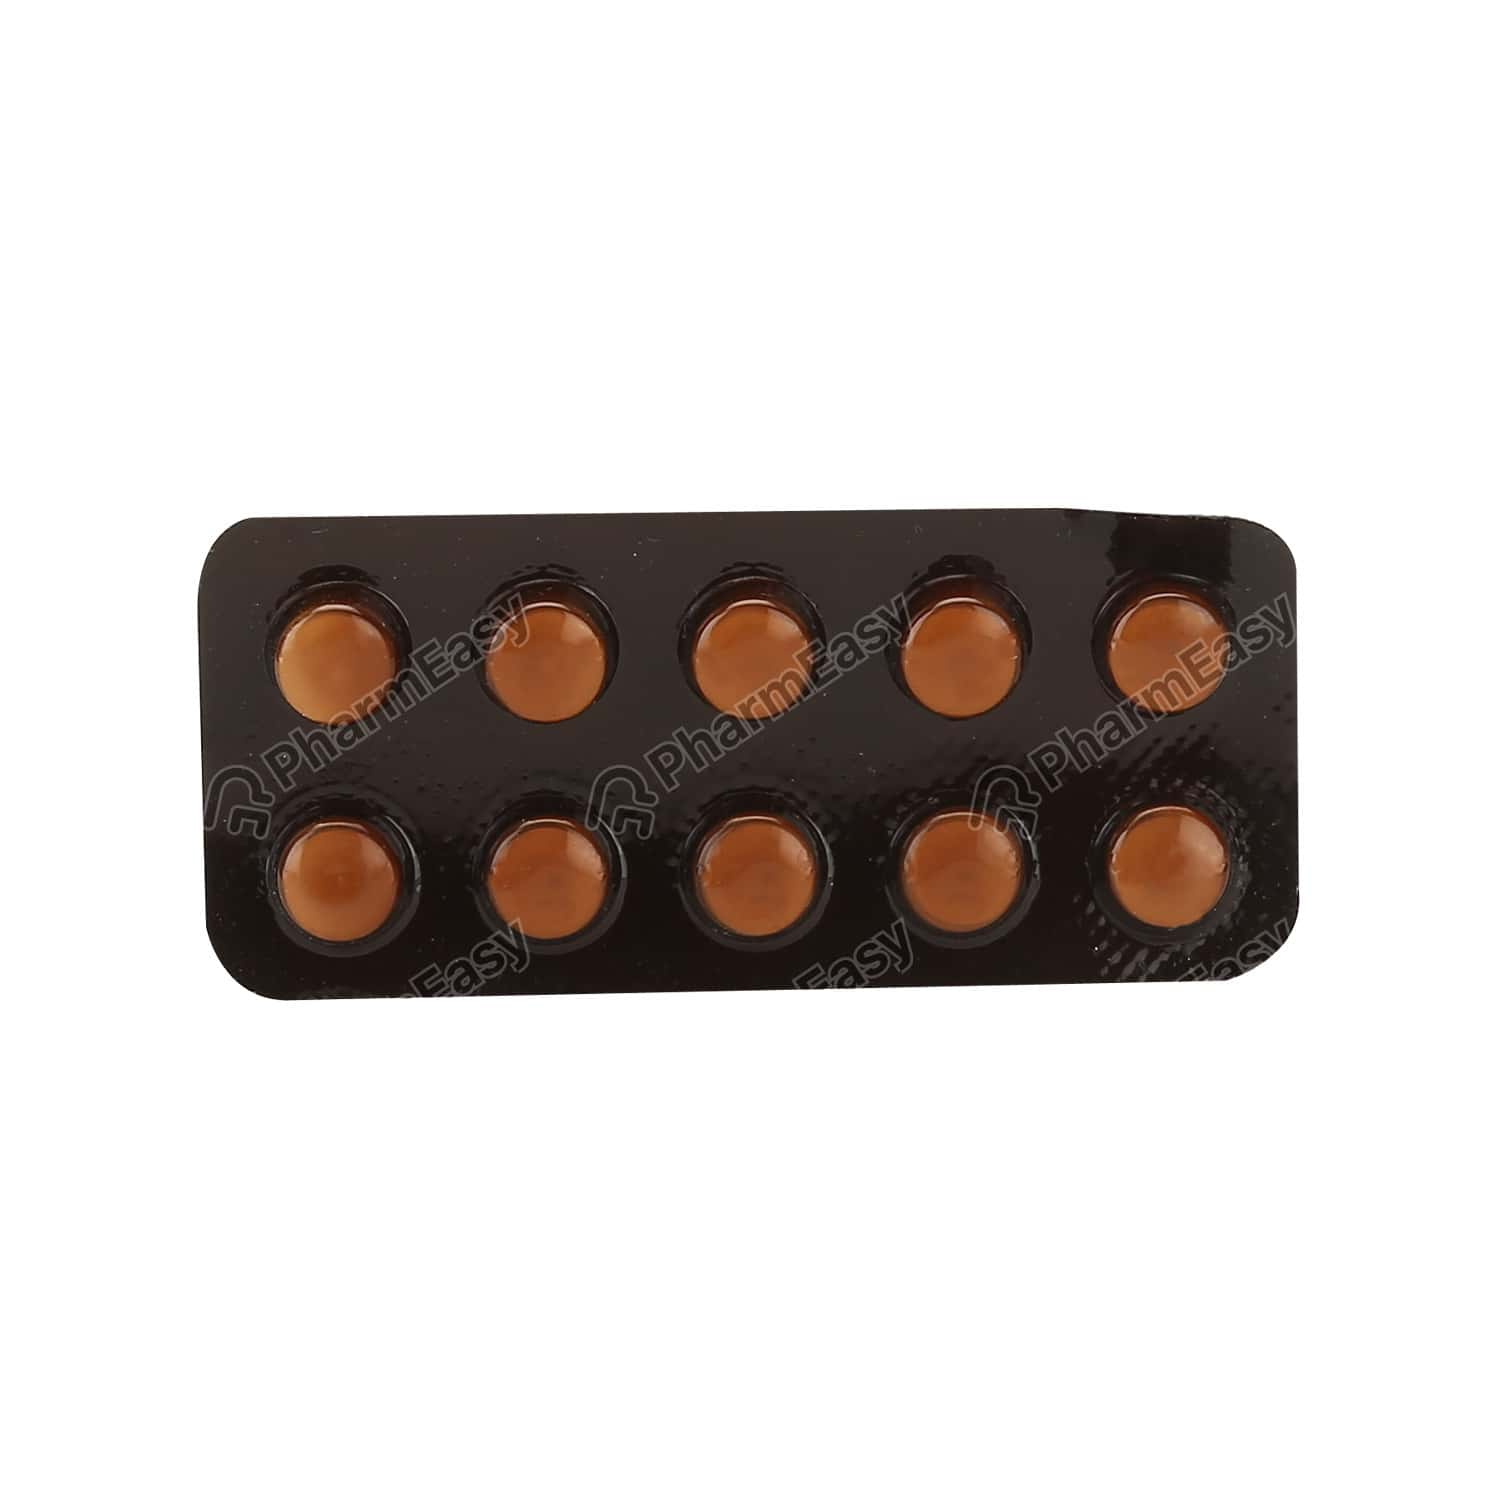 Ramison 5 Strip Of 10 Tablets